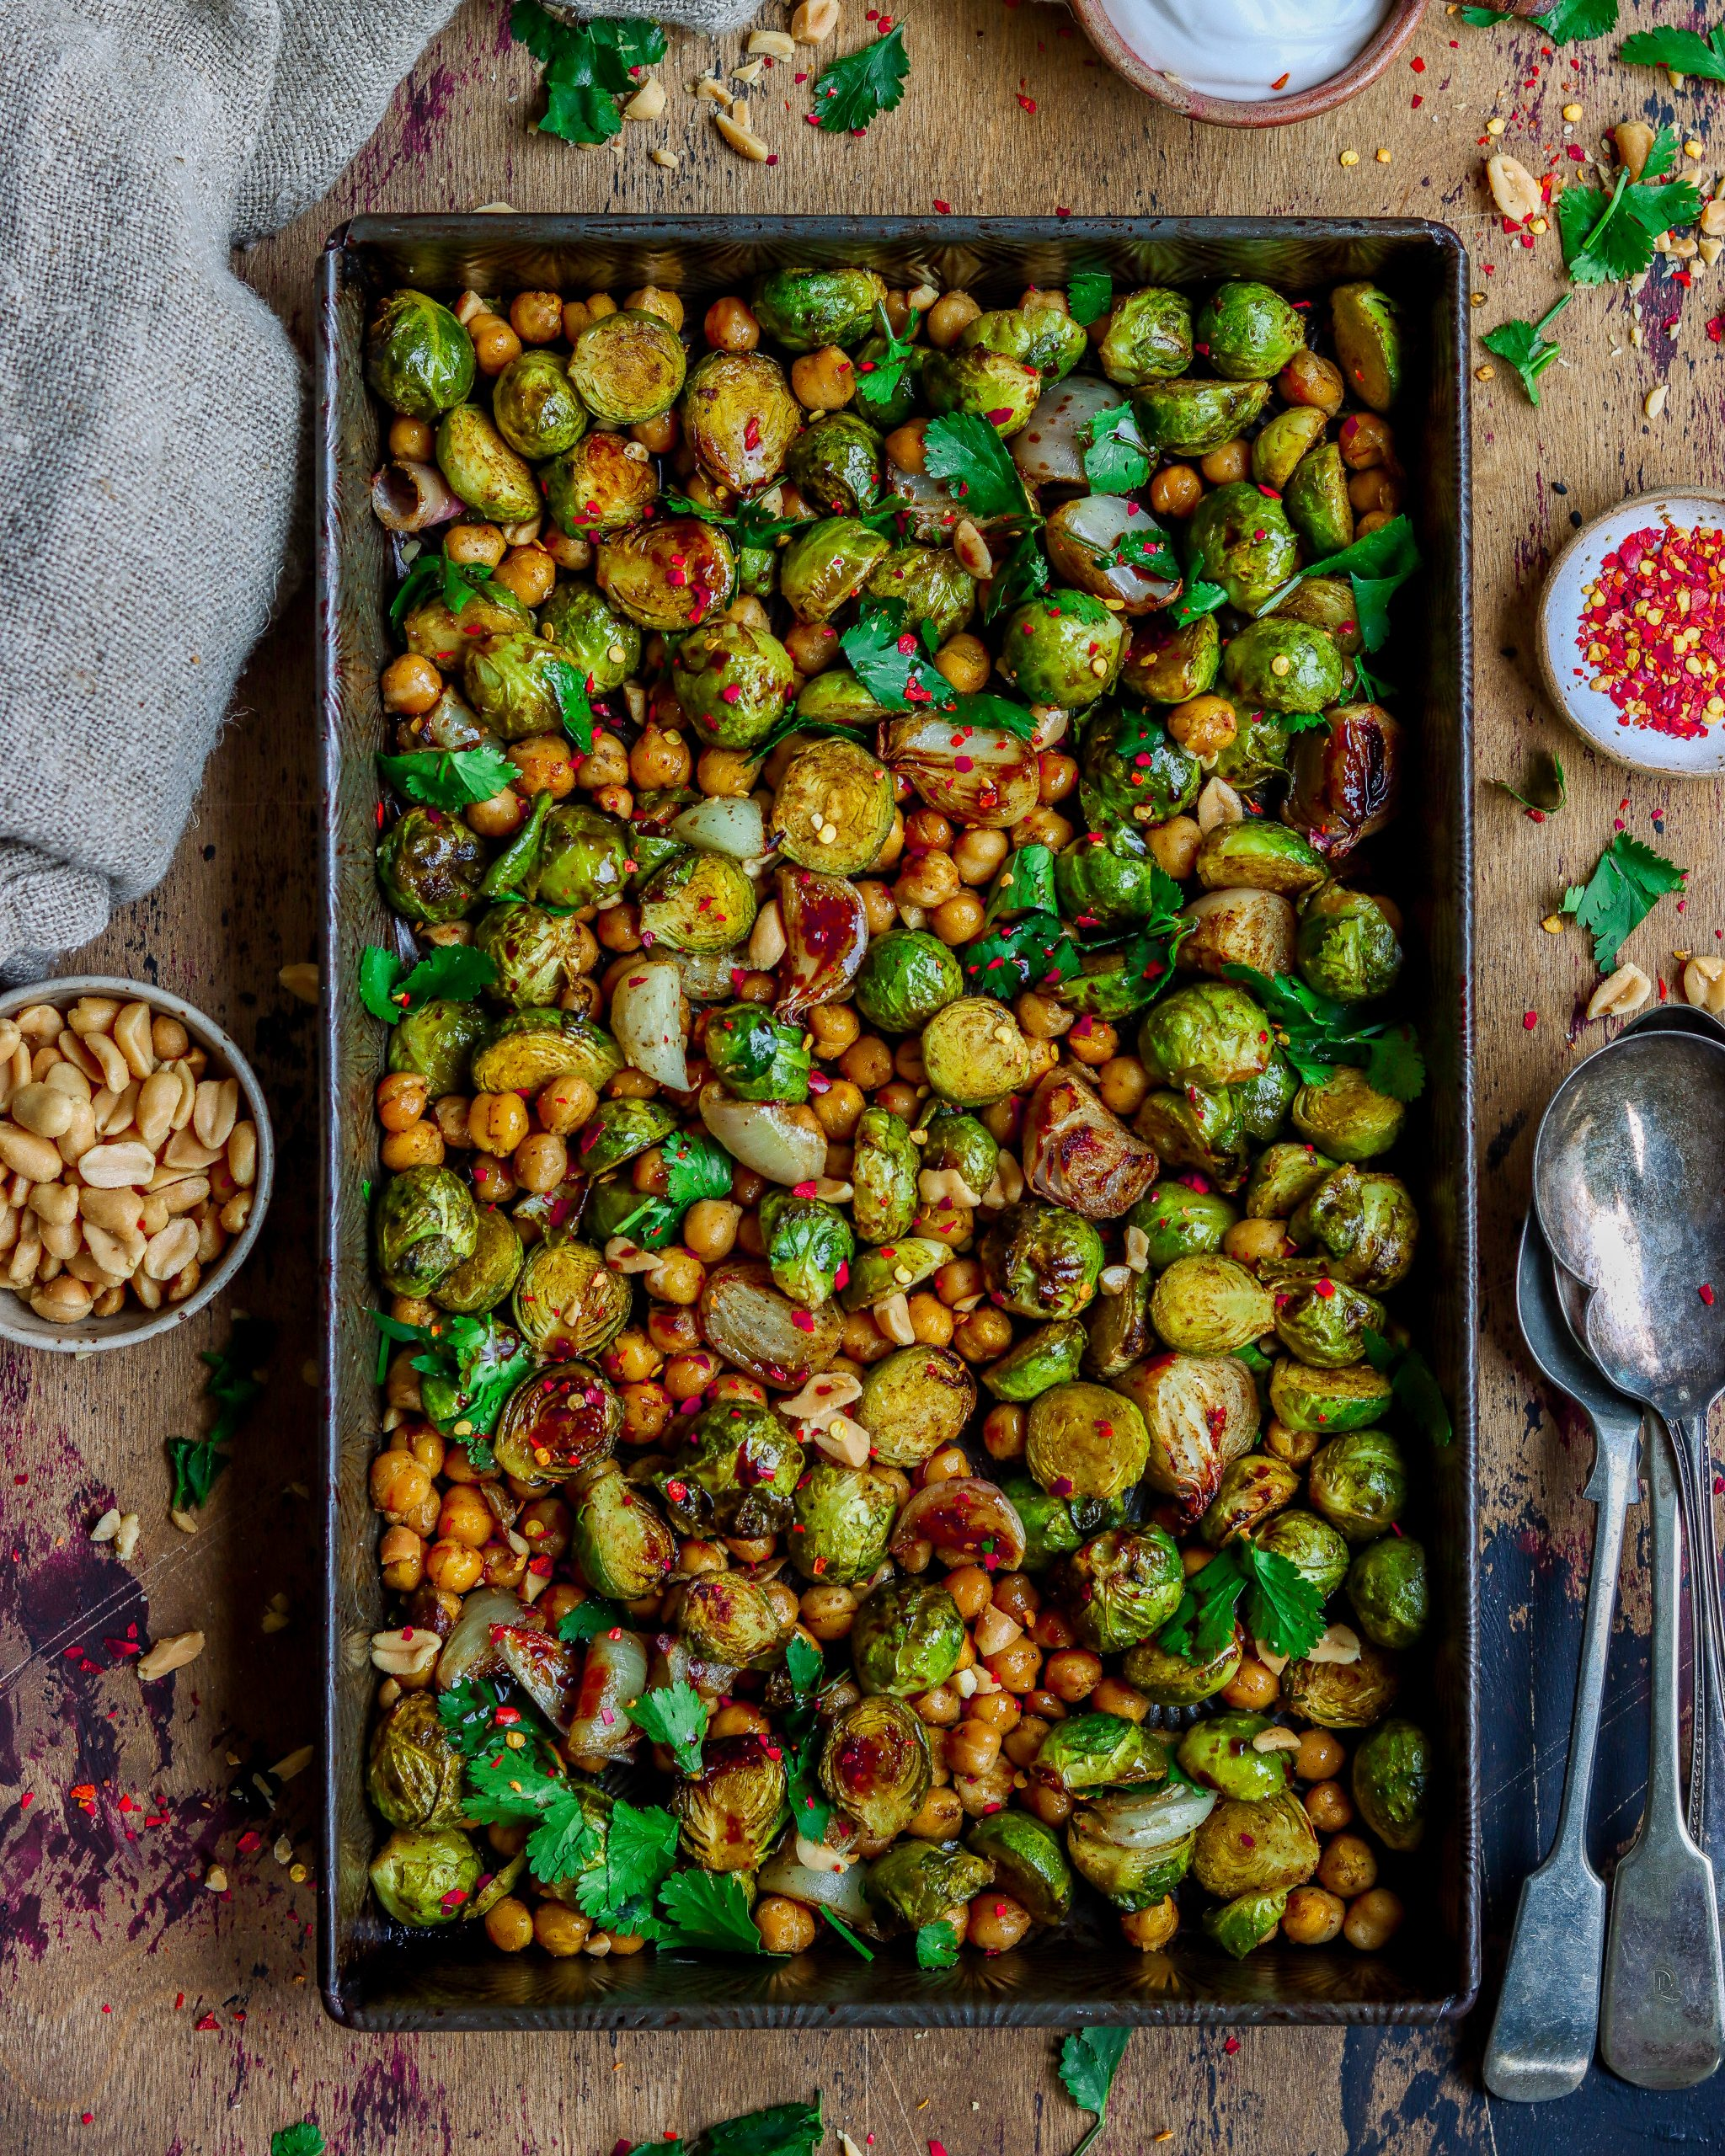 Tamarind Brussel Sprouts & Chickpea Tray Bake